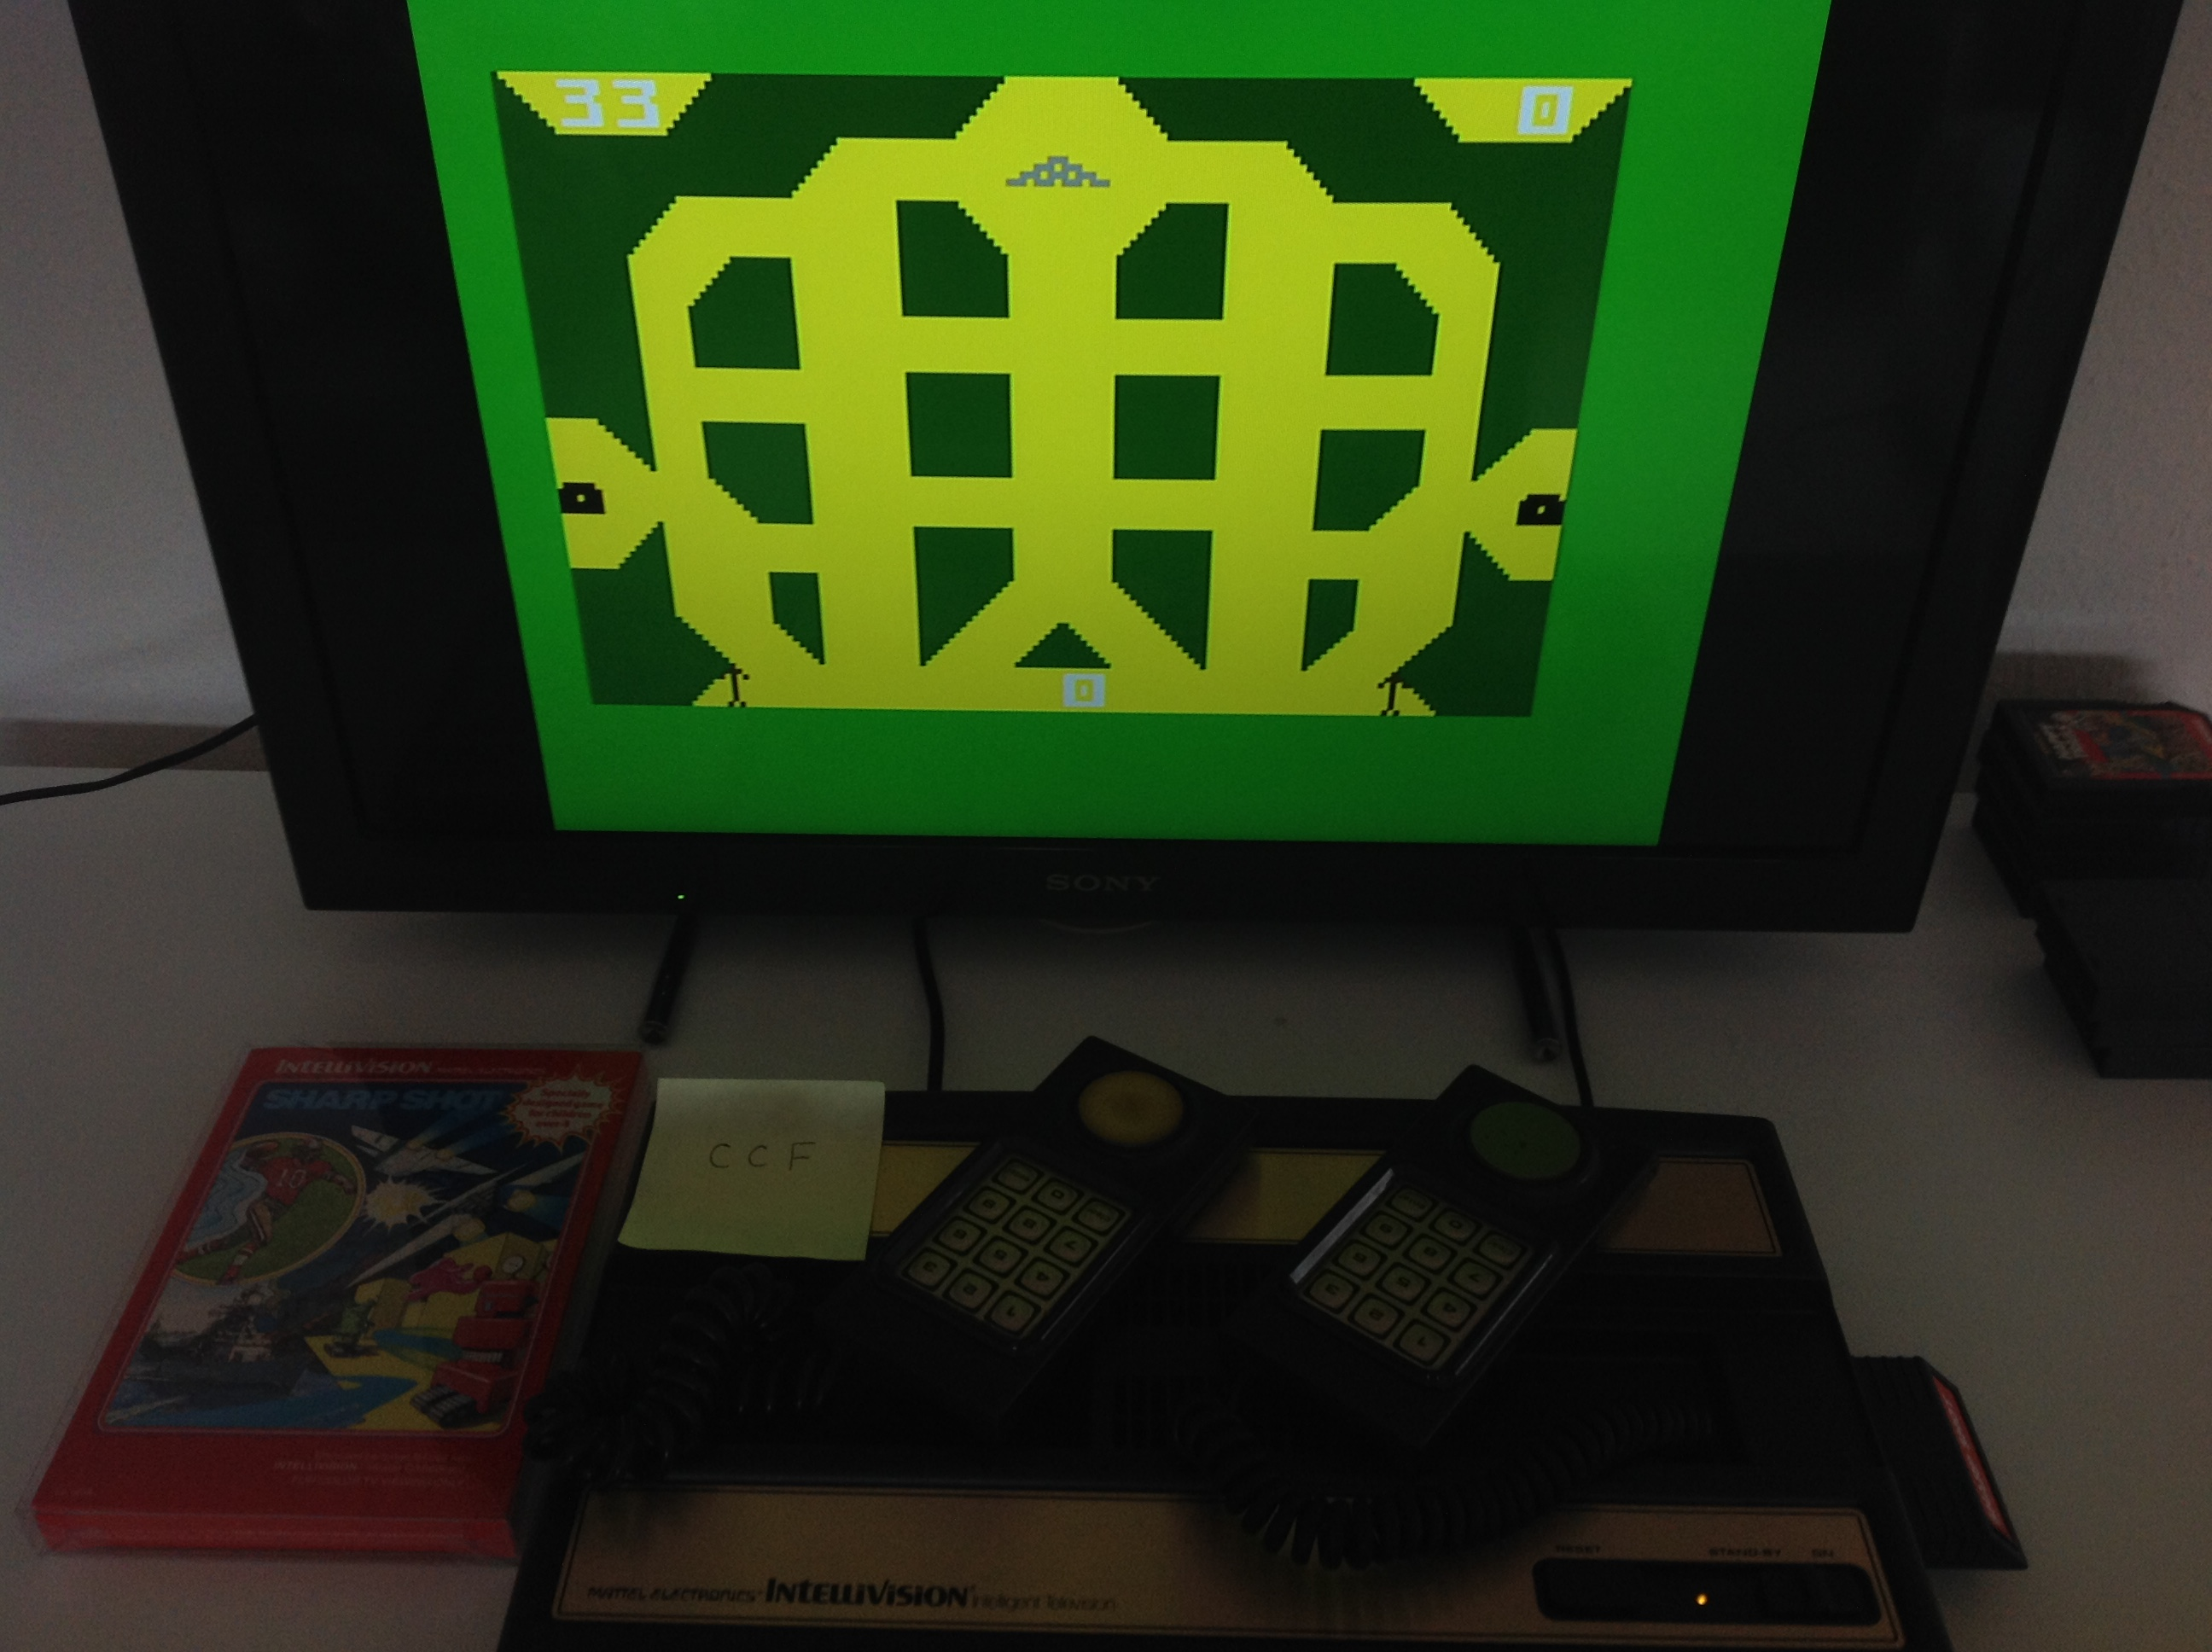 CoCoForest: Sharp Shot: Maze Shoot (Intellivision) 33 points on 2018-08-20 09:06:01